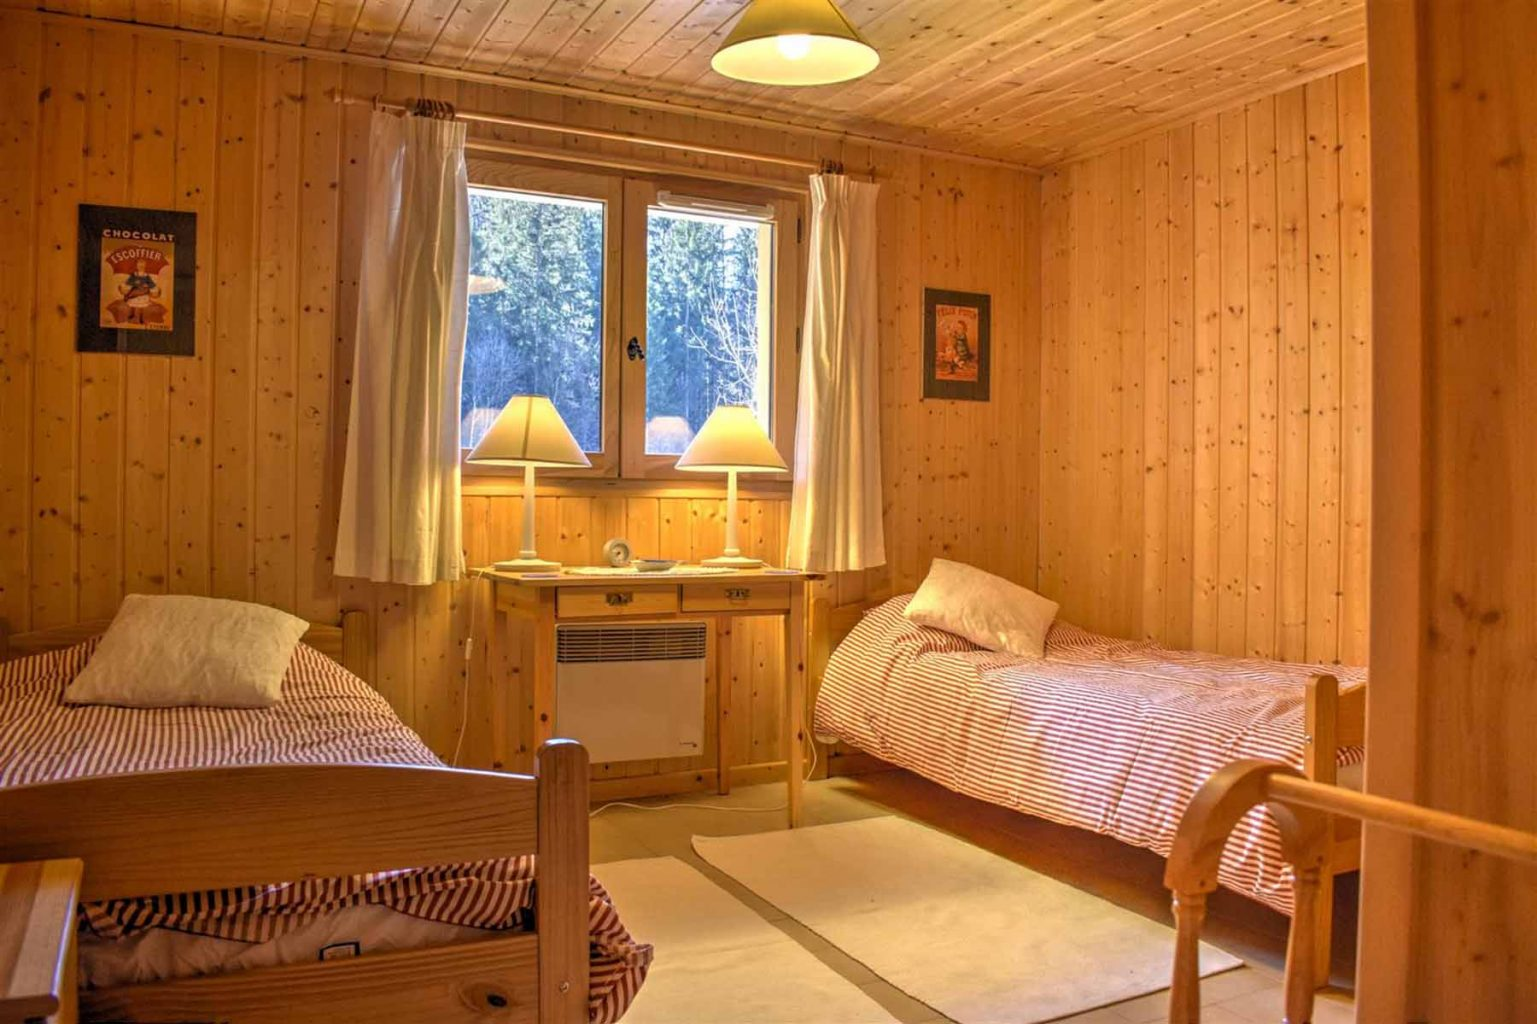 L'Ele Baud Chalet Bedroom